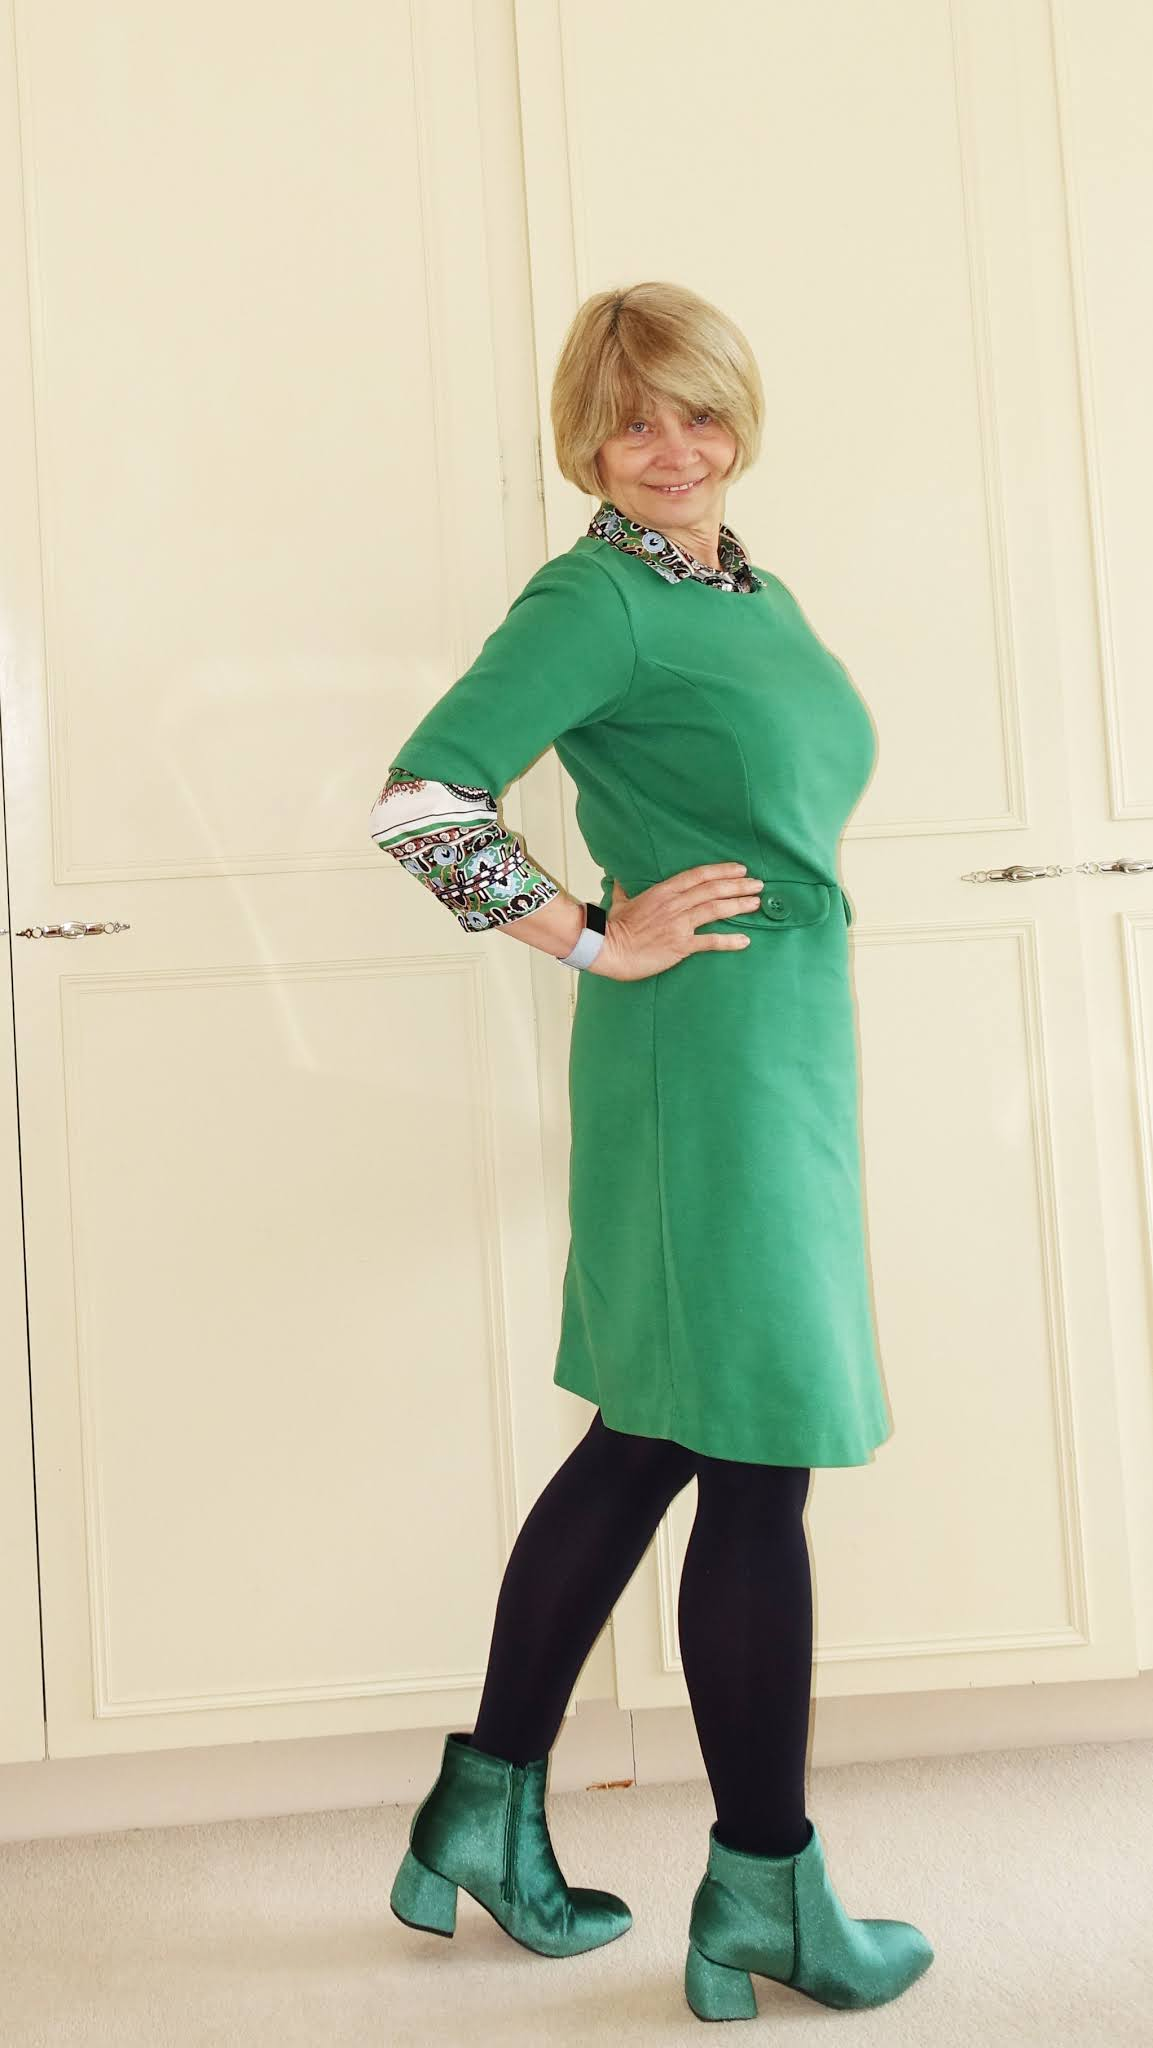 Gail Hanlon from Is This Mutton in a green dress and green velvet ankle boots